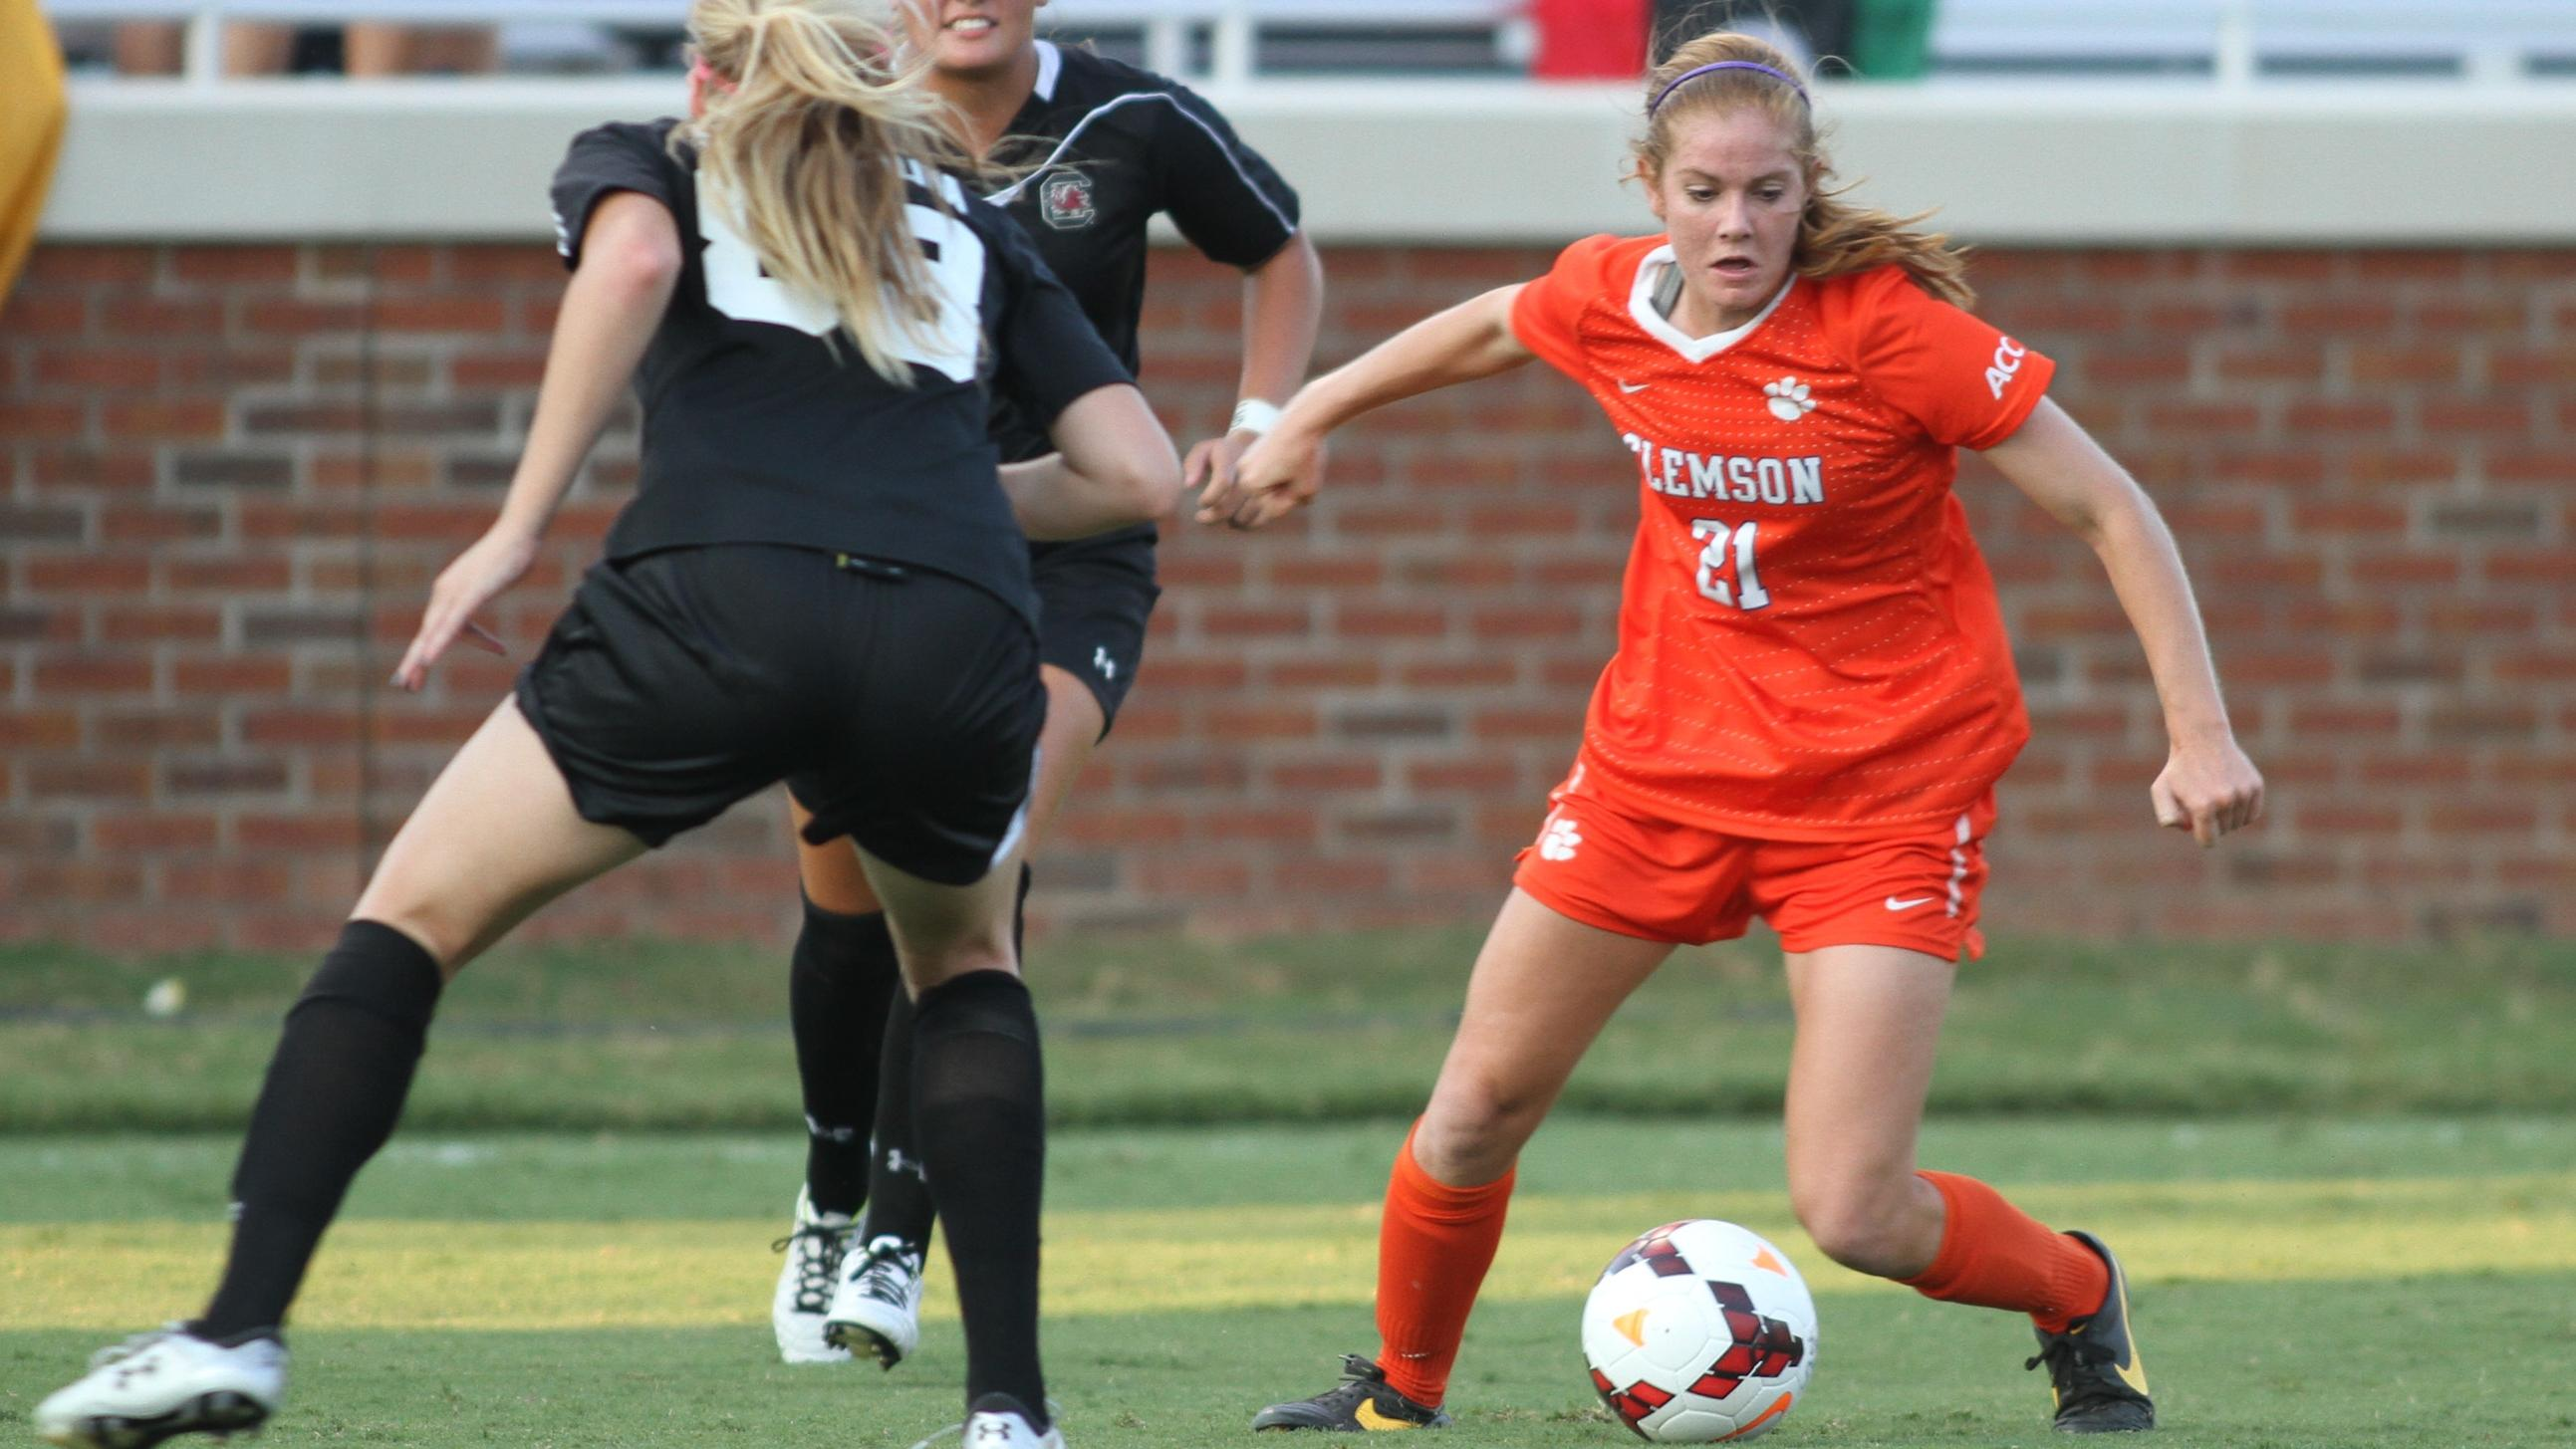 Tigers Defeat Wofford, Tie Tennessee in Spring Exhibition Games Saturday